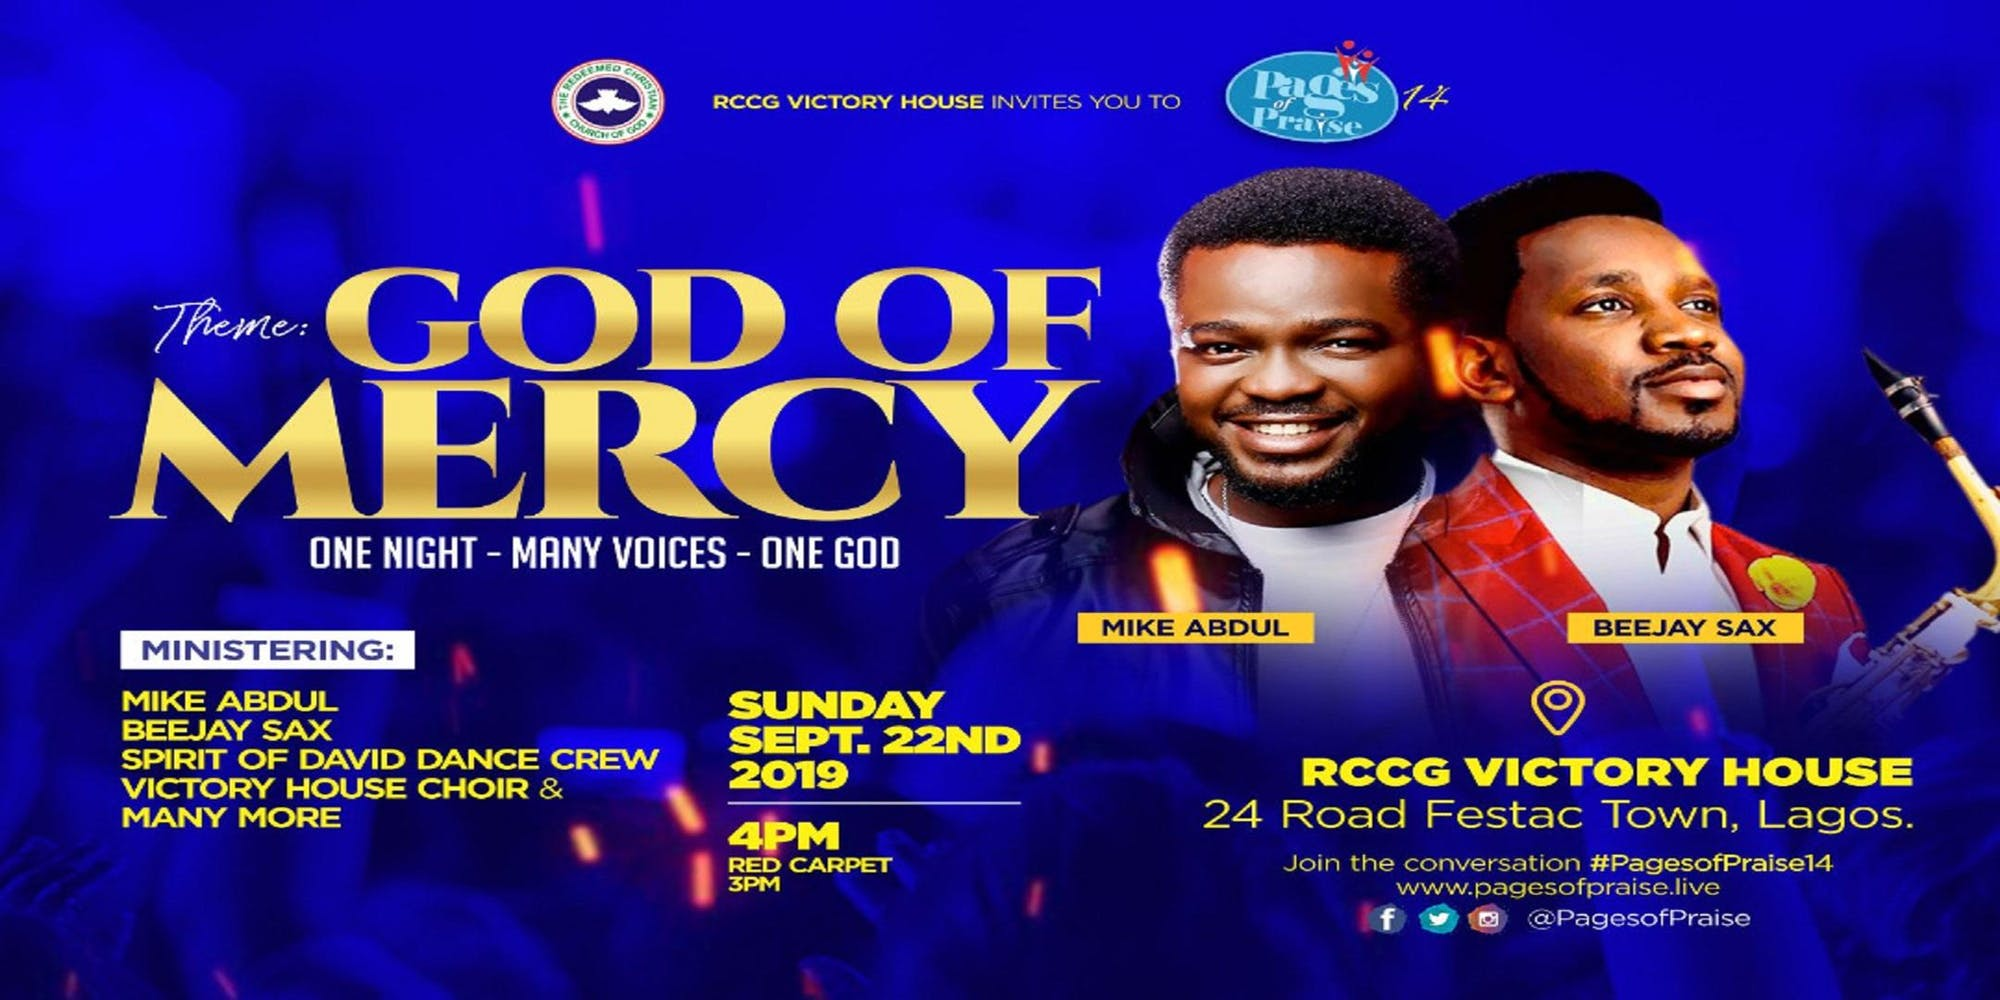 RCCG Victory House